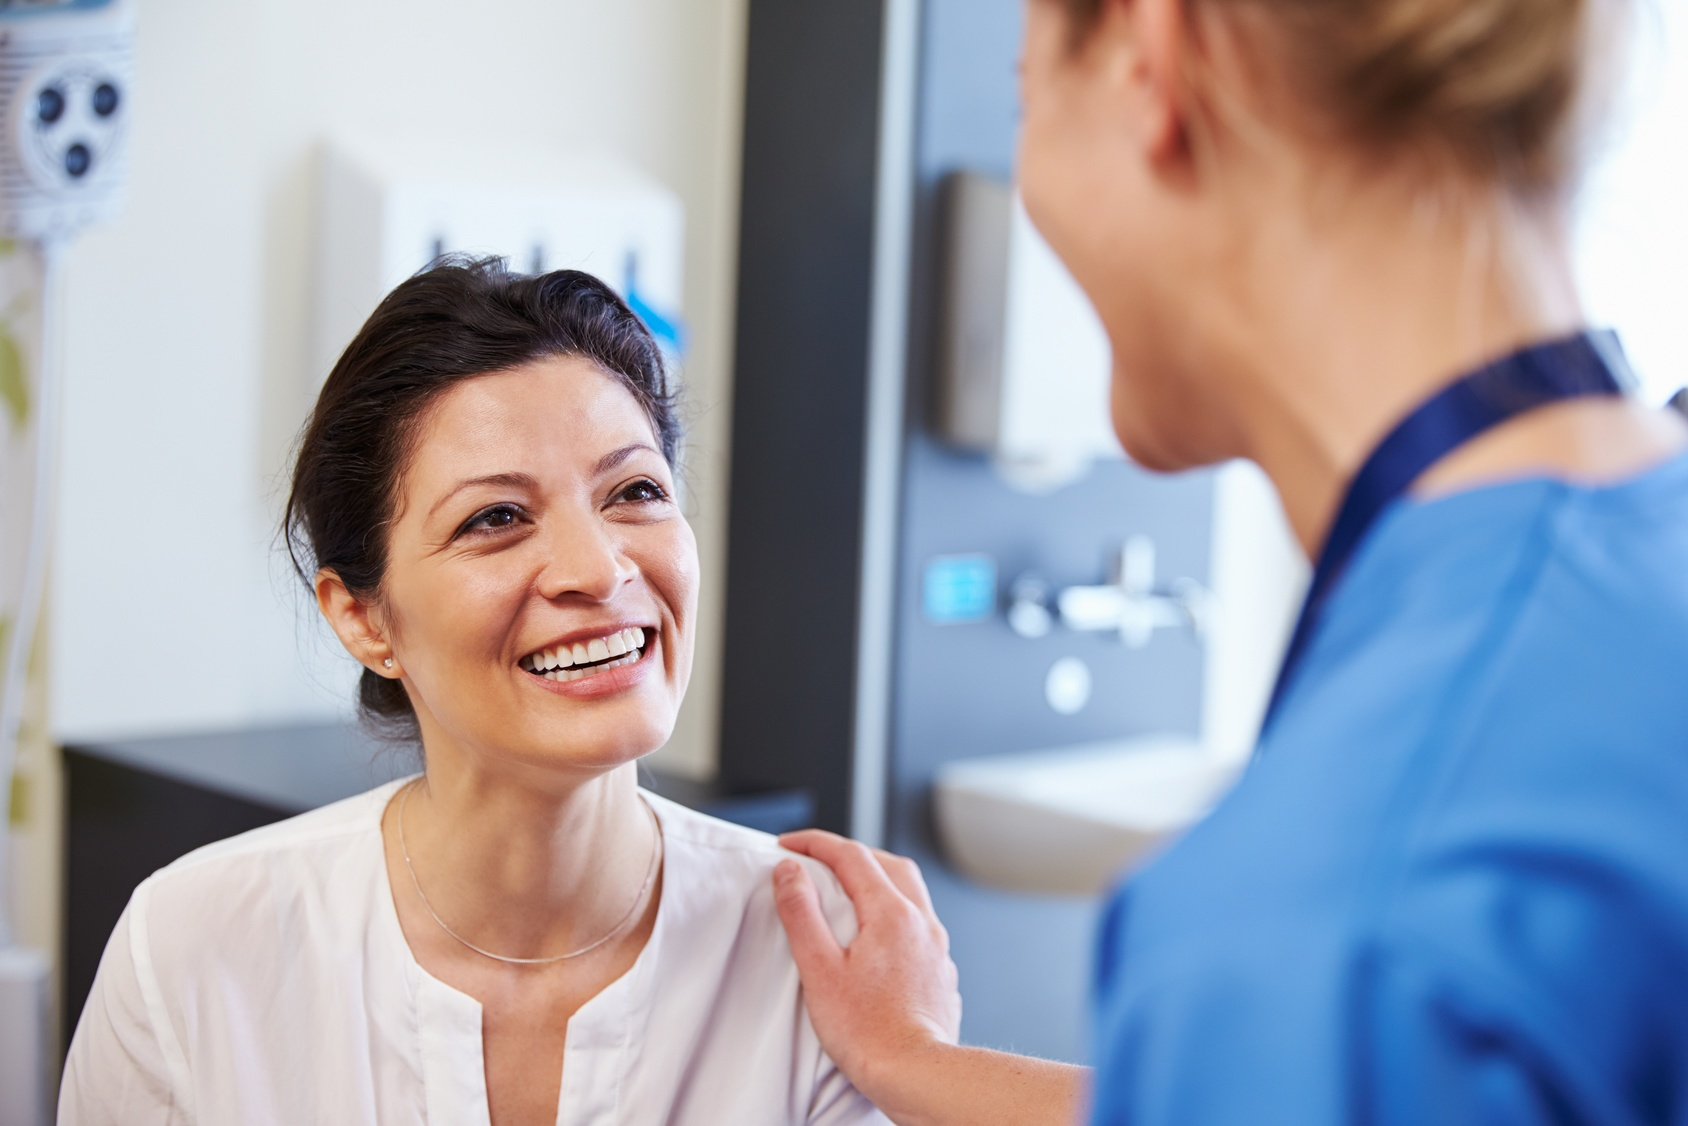 How Psychographic Segmentation Can Help You Acquire New Patients